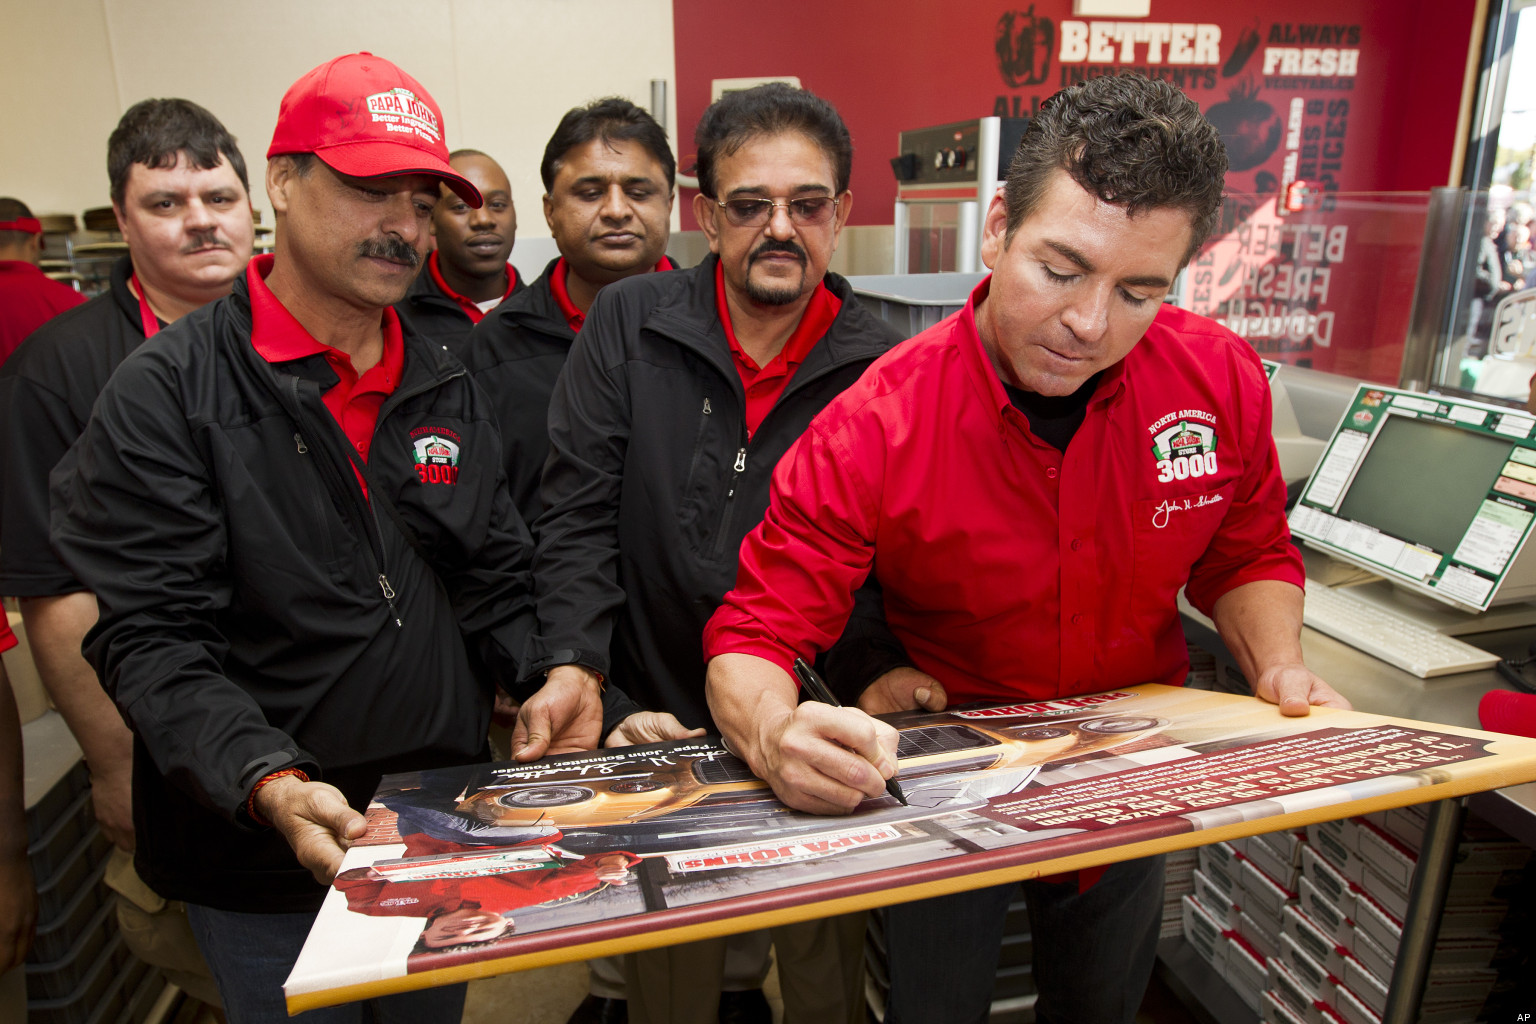 Papa John's CEO John Schnatter Says Company Will Reduce Workers ...